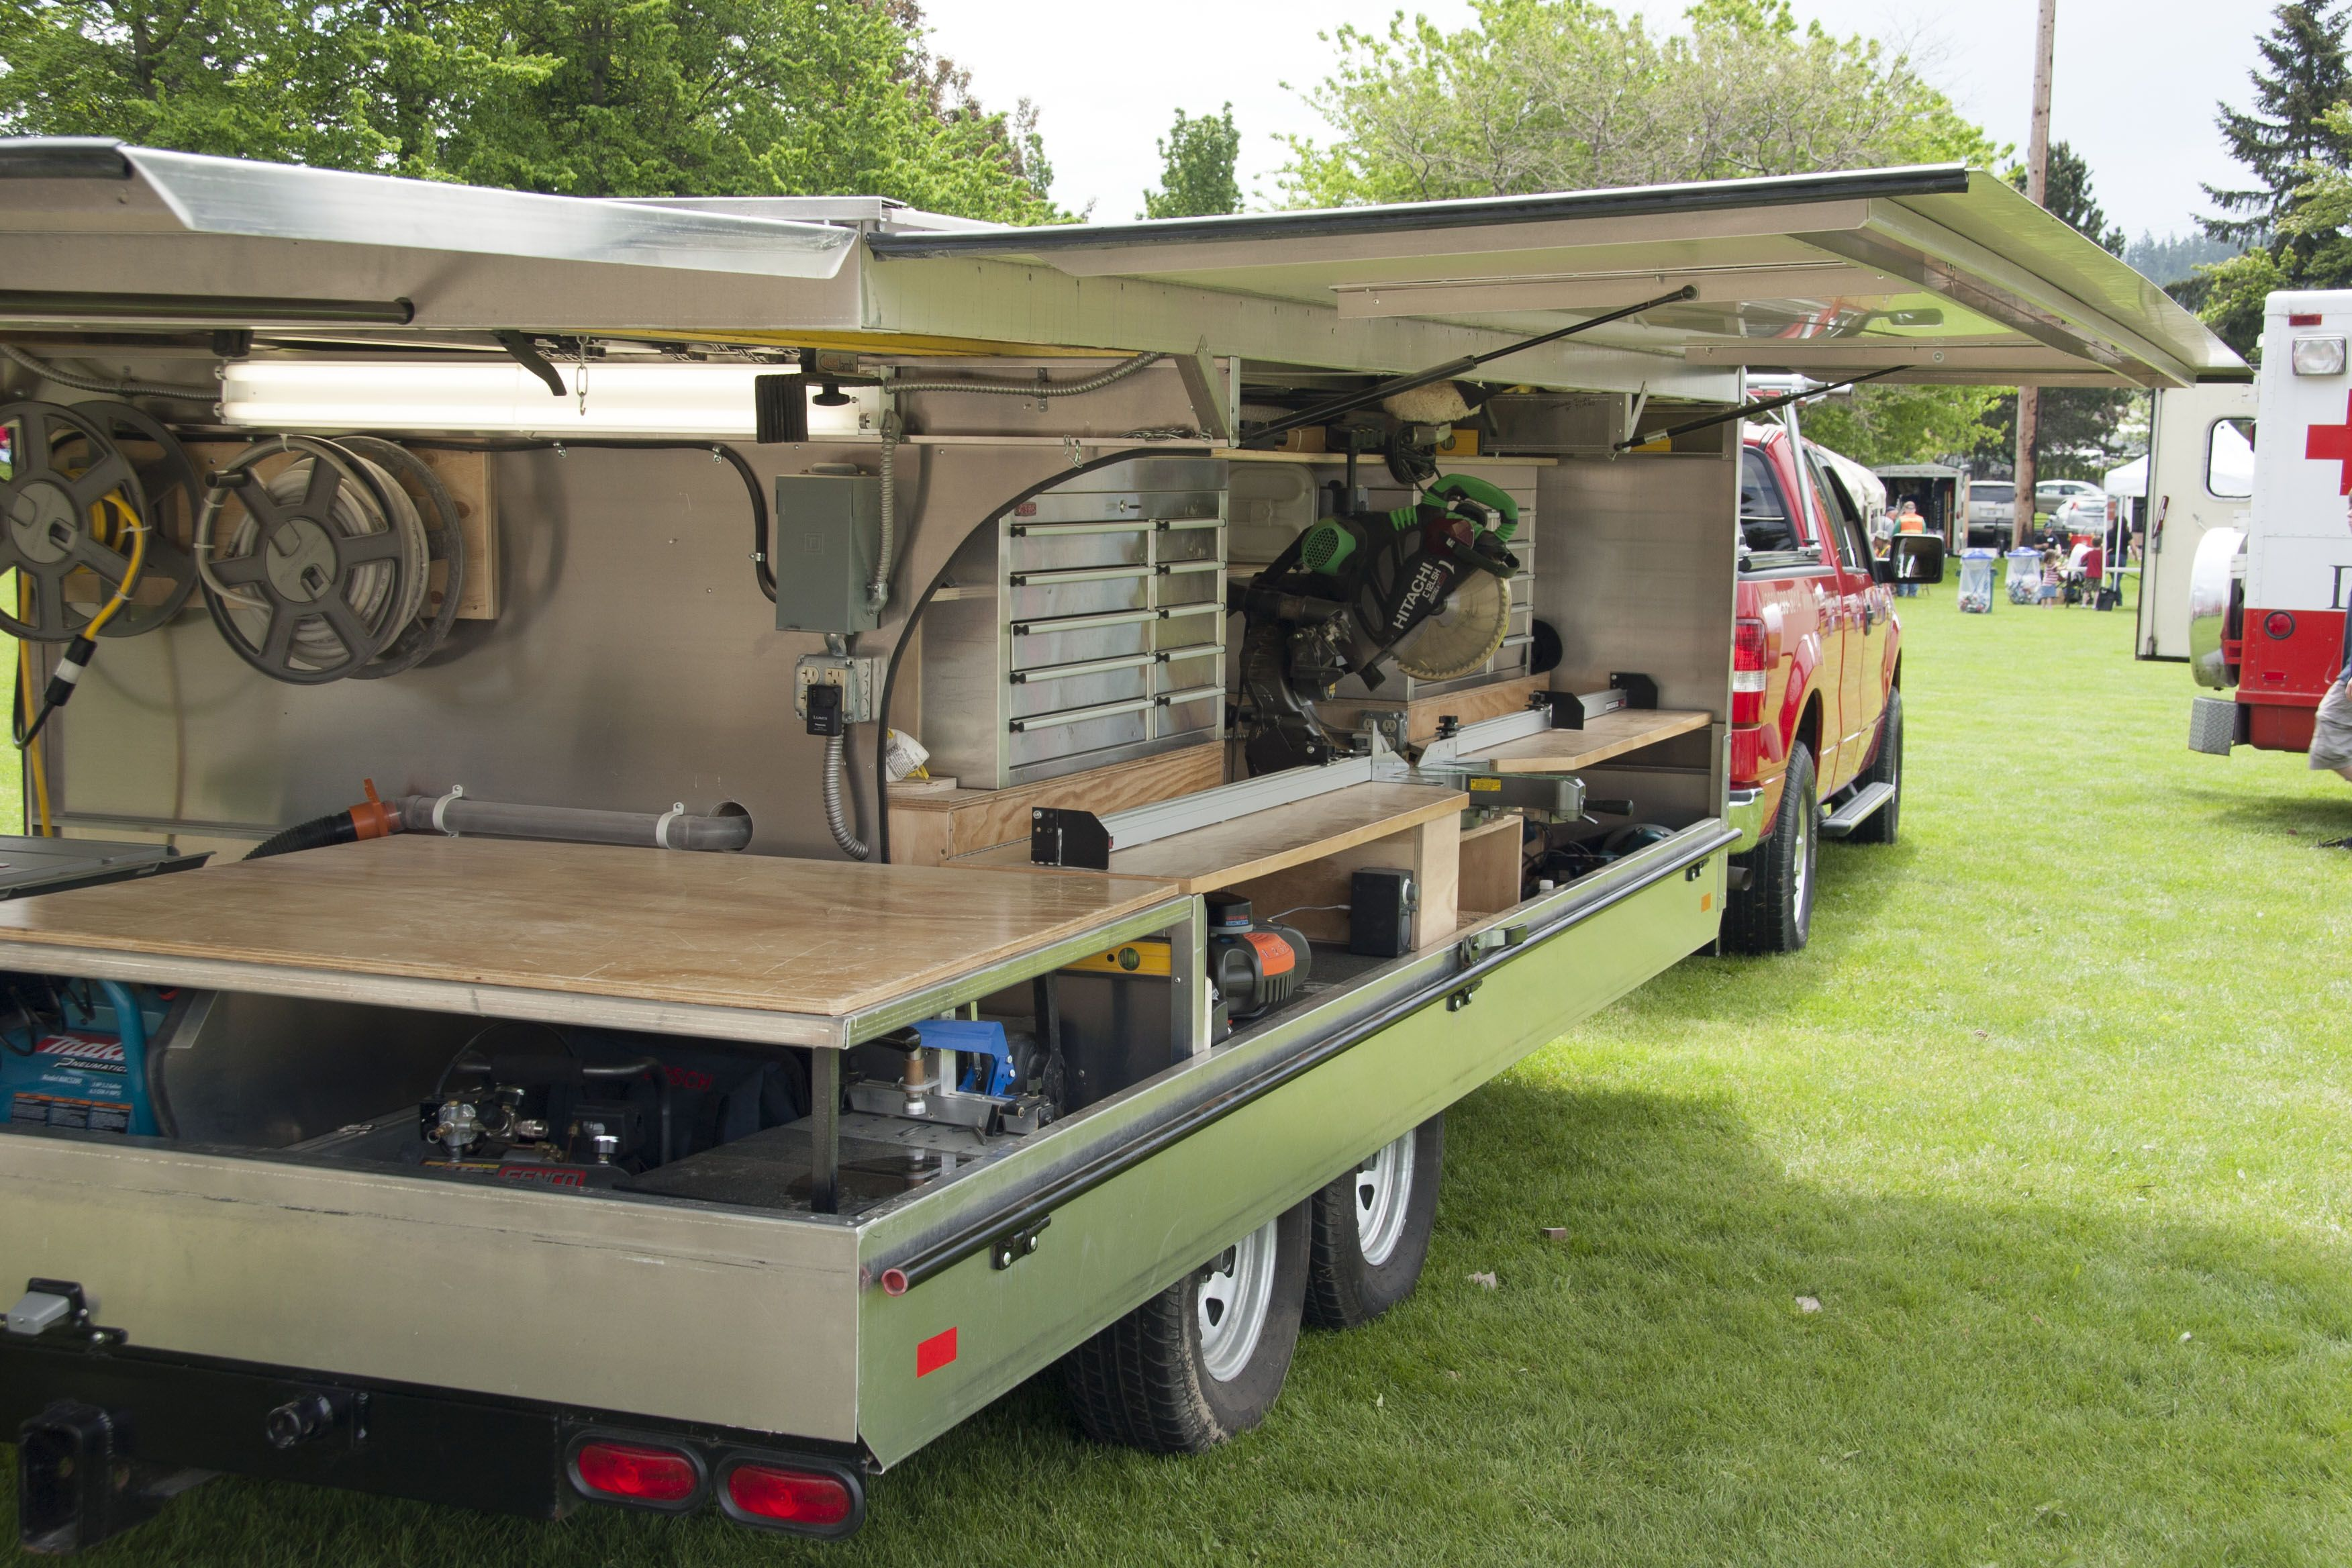 Ron paulk 39 s winged tool trailer to be reborn as a small for Rv workshop